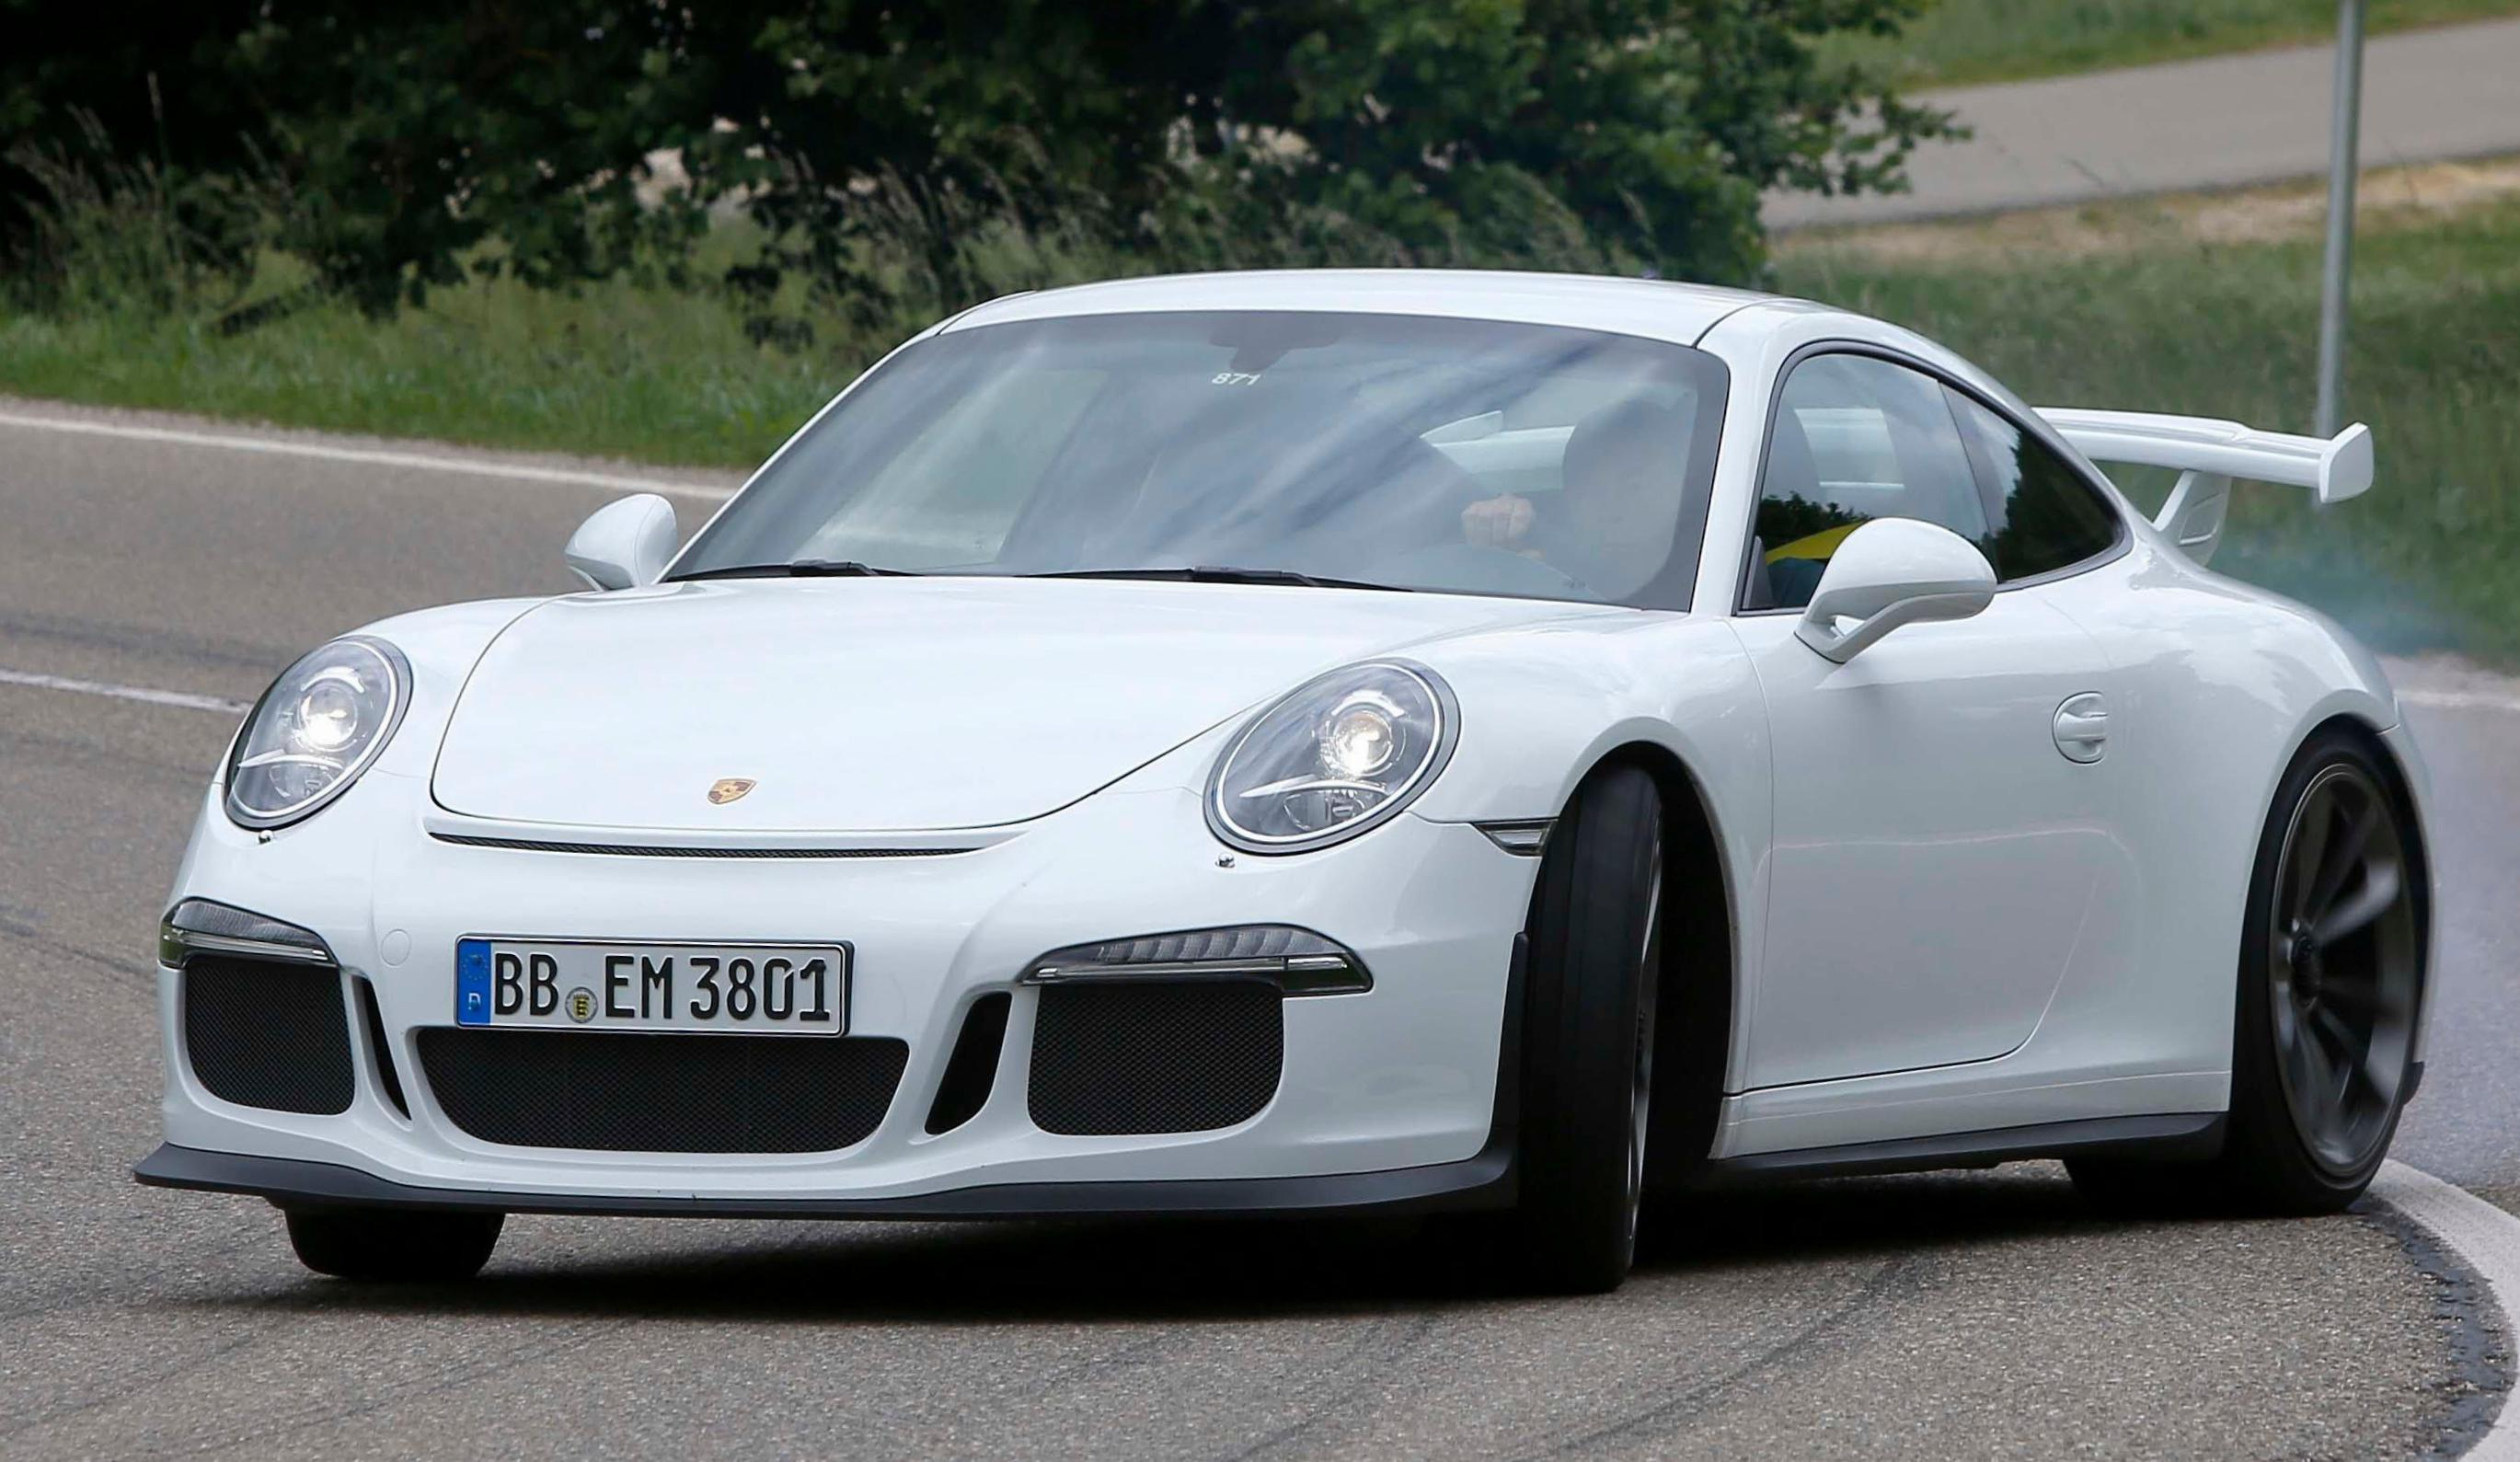 Porsche 911 GT3 used hatchback